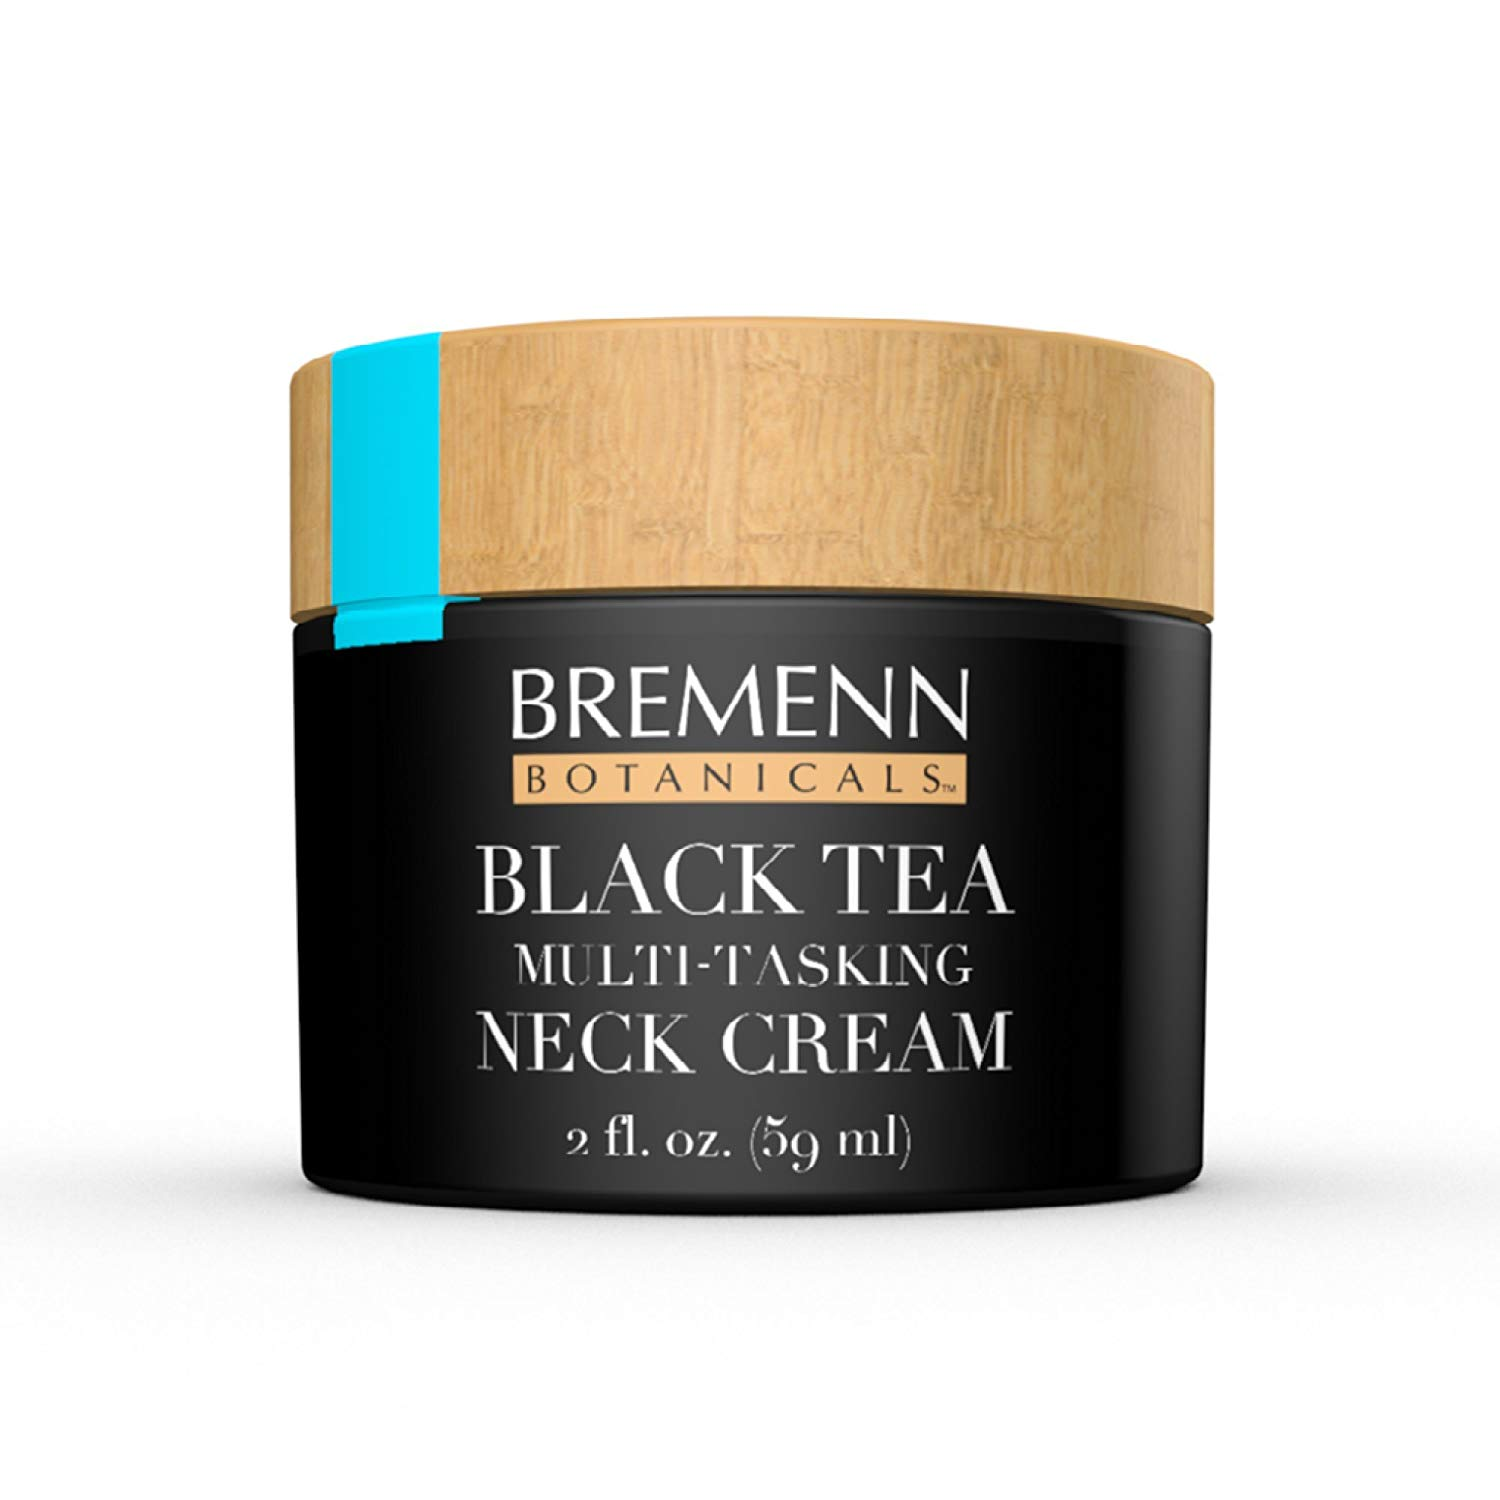 Black Tea Skin Care Multi-Tasking Neck Cream - Topical Compound for Younger, Healthier, More Vibrant-Looking Skin and Increased Elasticity, Toning, and Suppleness, (2 fl. oz.)